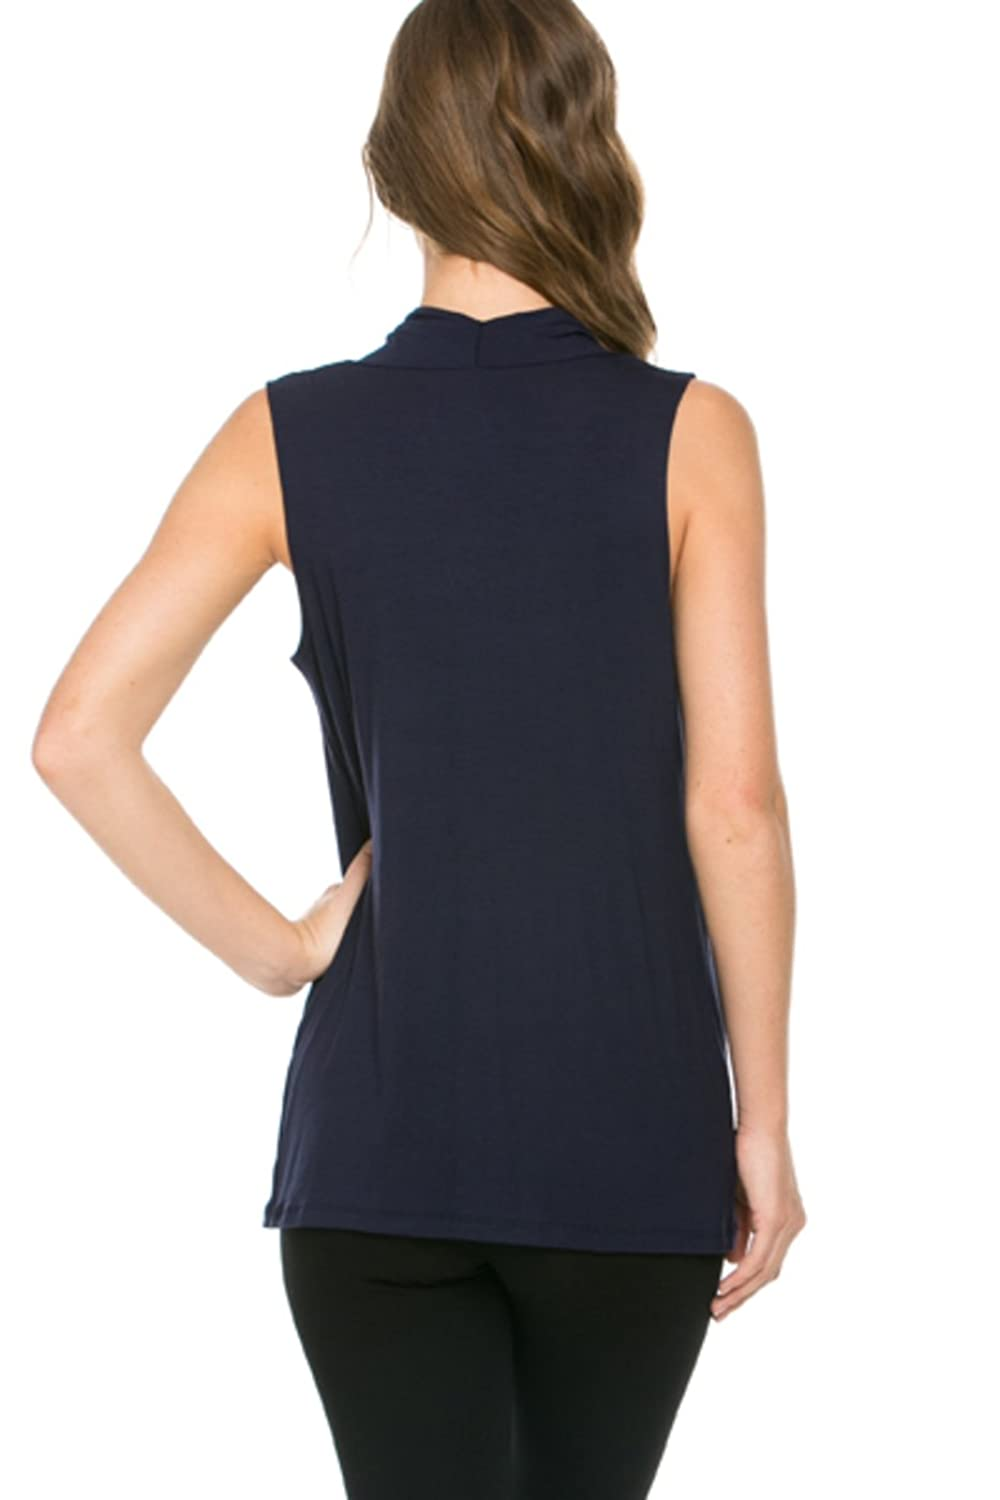 2LUV Women's Sleeveless Cowl Neck Tunic Top